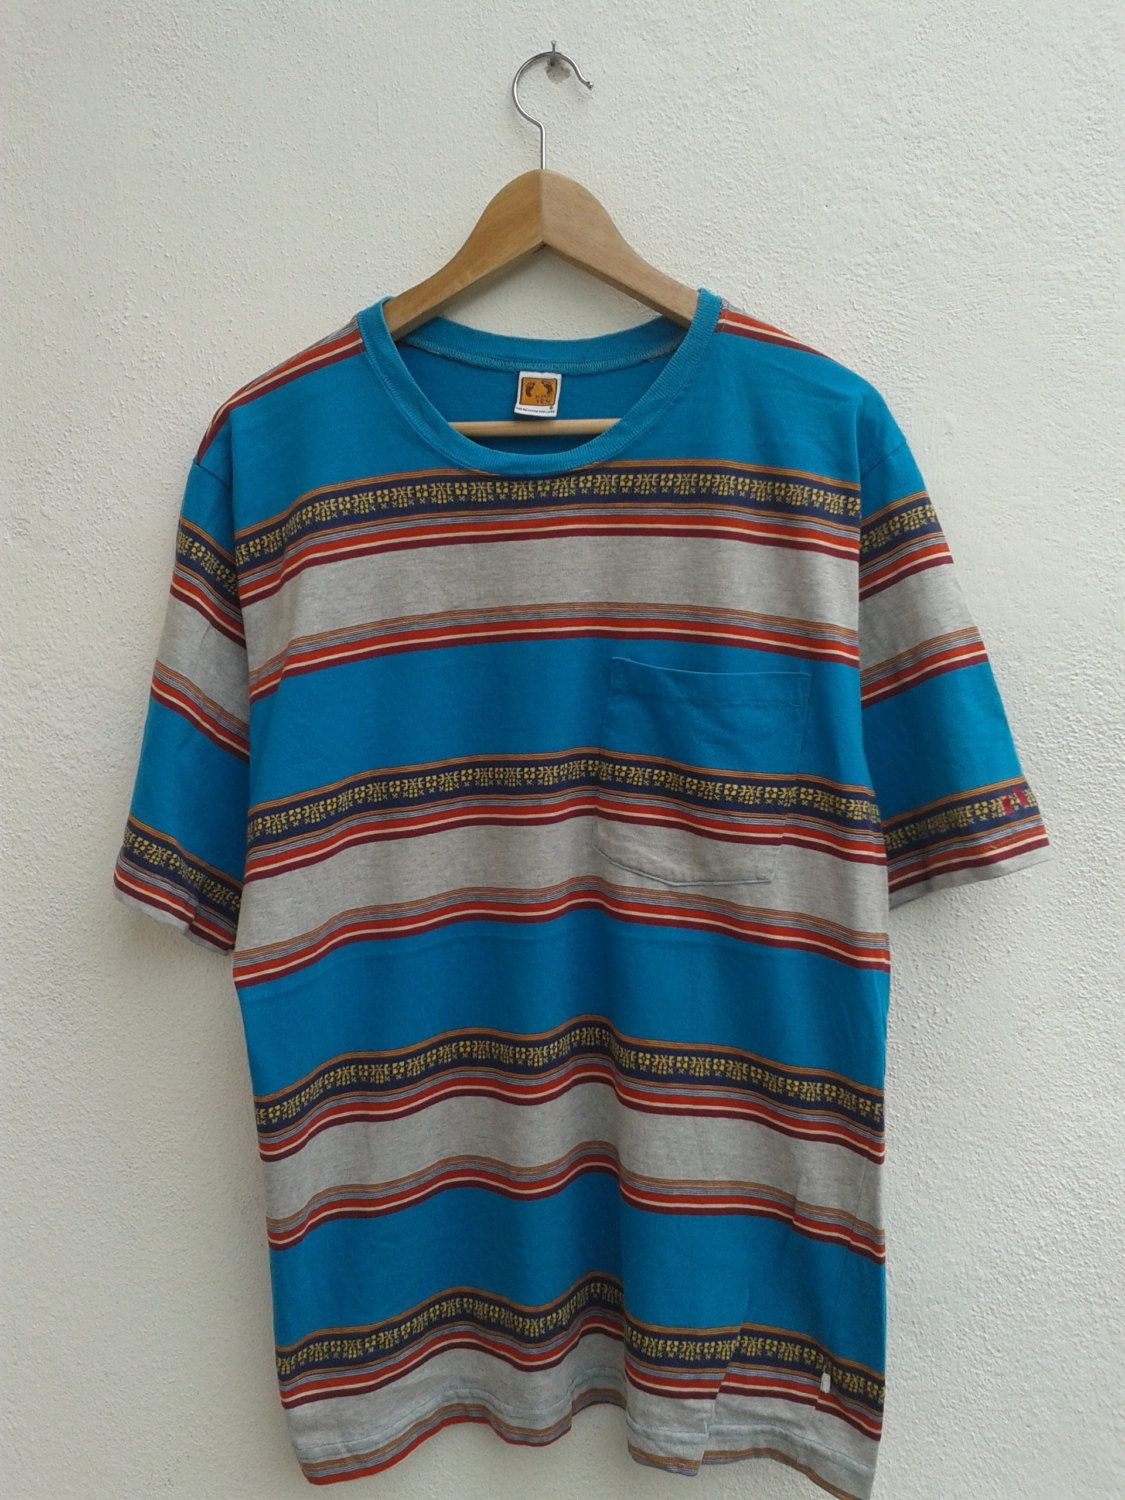 5aef0c21b SUMMER SALE Vintage 70s-80s Hang Ten Stripes Tribe Orange Tag Foot Print  Surfing Gear Pocket T-Shirt - $67.92 USD